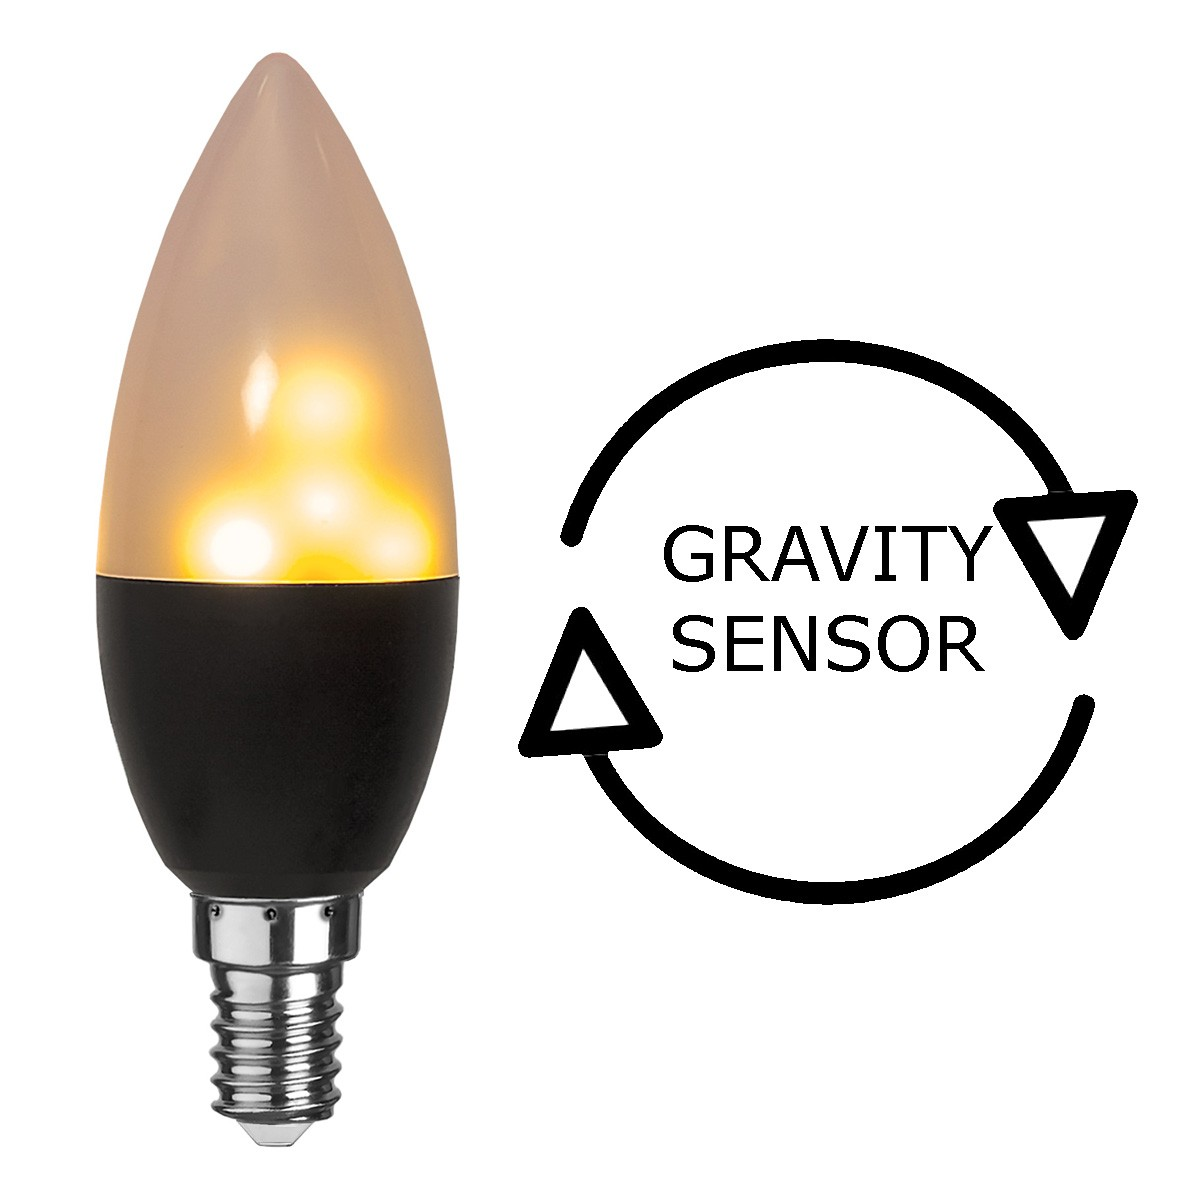 Kerzen Lampe Gravity - Flammensimulation mit LEDs - Flackernde Flammen - E14 - warmweiss